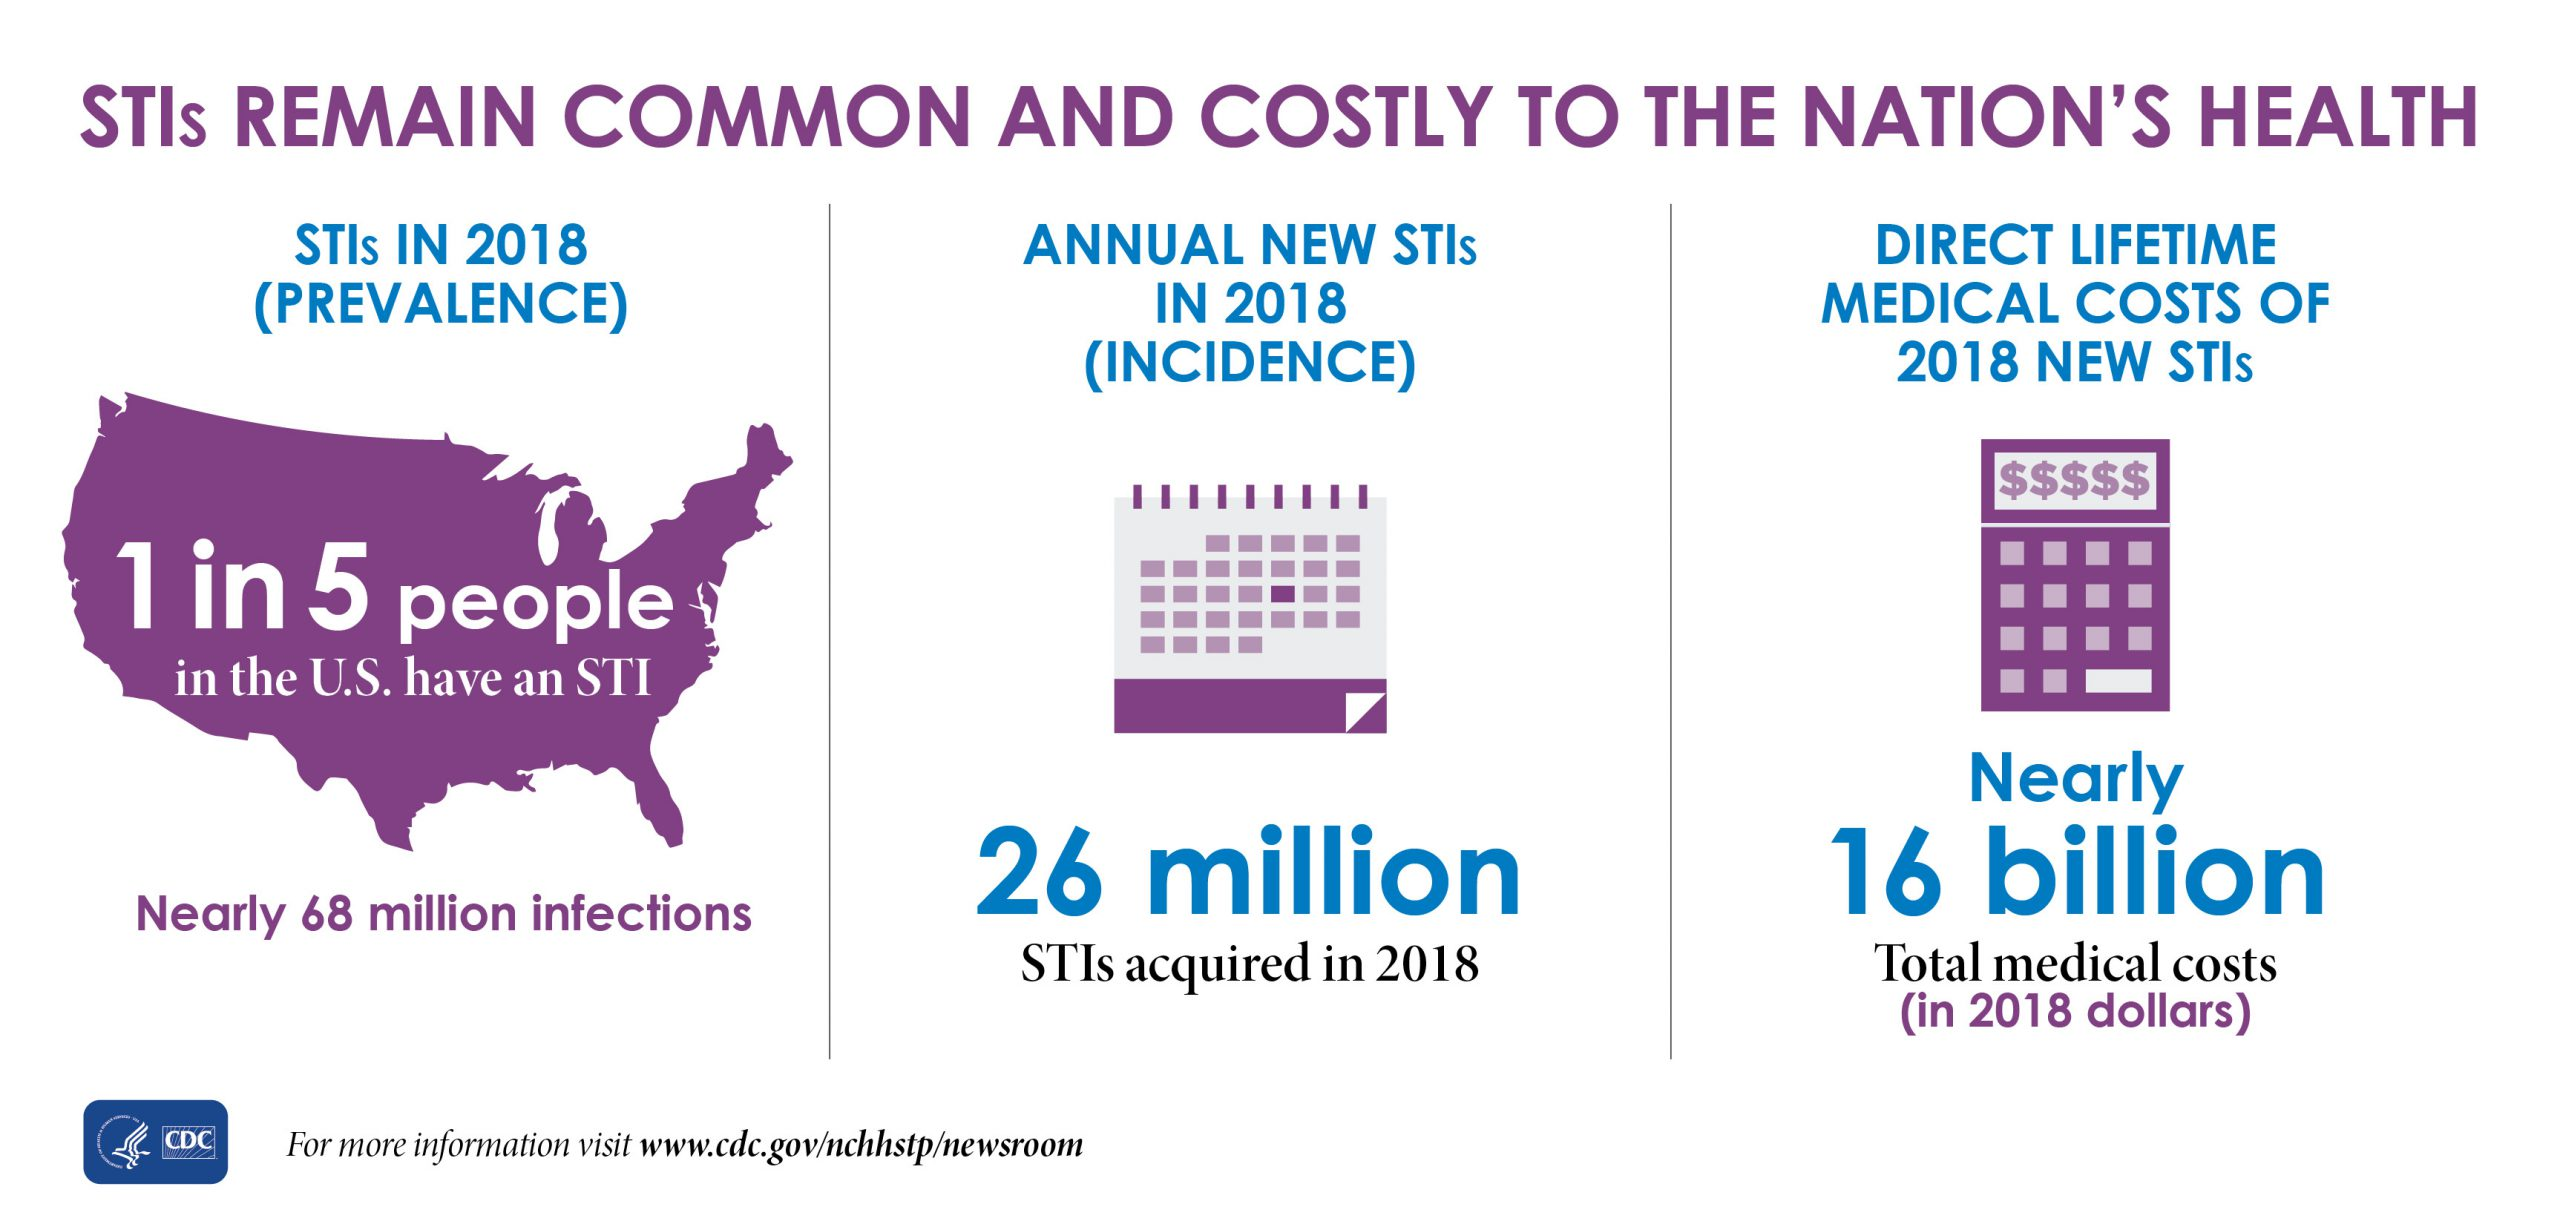 The graphic shows there were nearly 68 million infections in 2018 (prevalence), and that 1 in 5 people in the U.S. have an STI.   The graphic also shows that there were 26 million STIs acquired in 2018 (incidence).   And, the graphic shows that the direct lifetime medical costs of new STIs in 2018 totaled nearly $16 billion (in 2018 dollars).